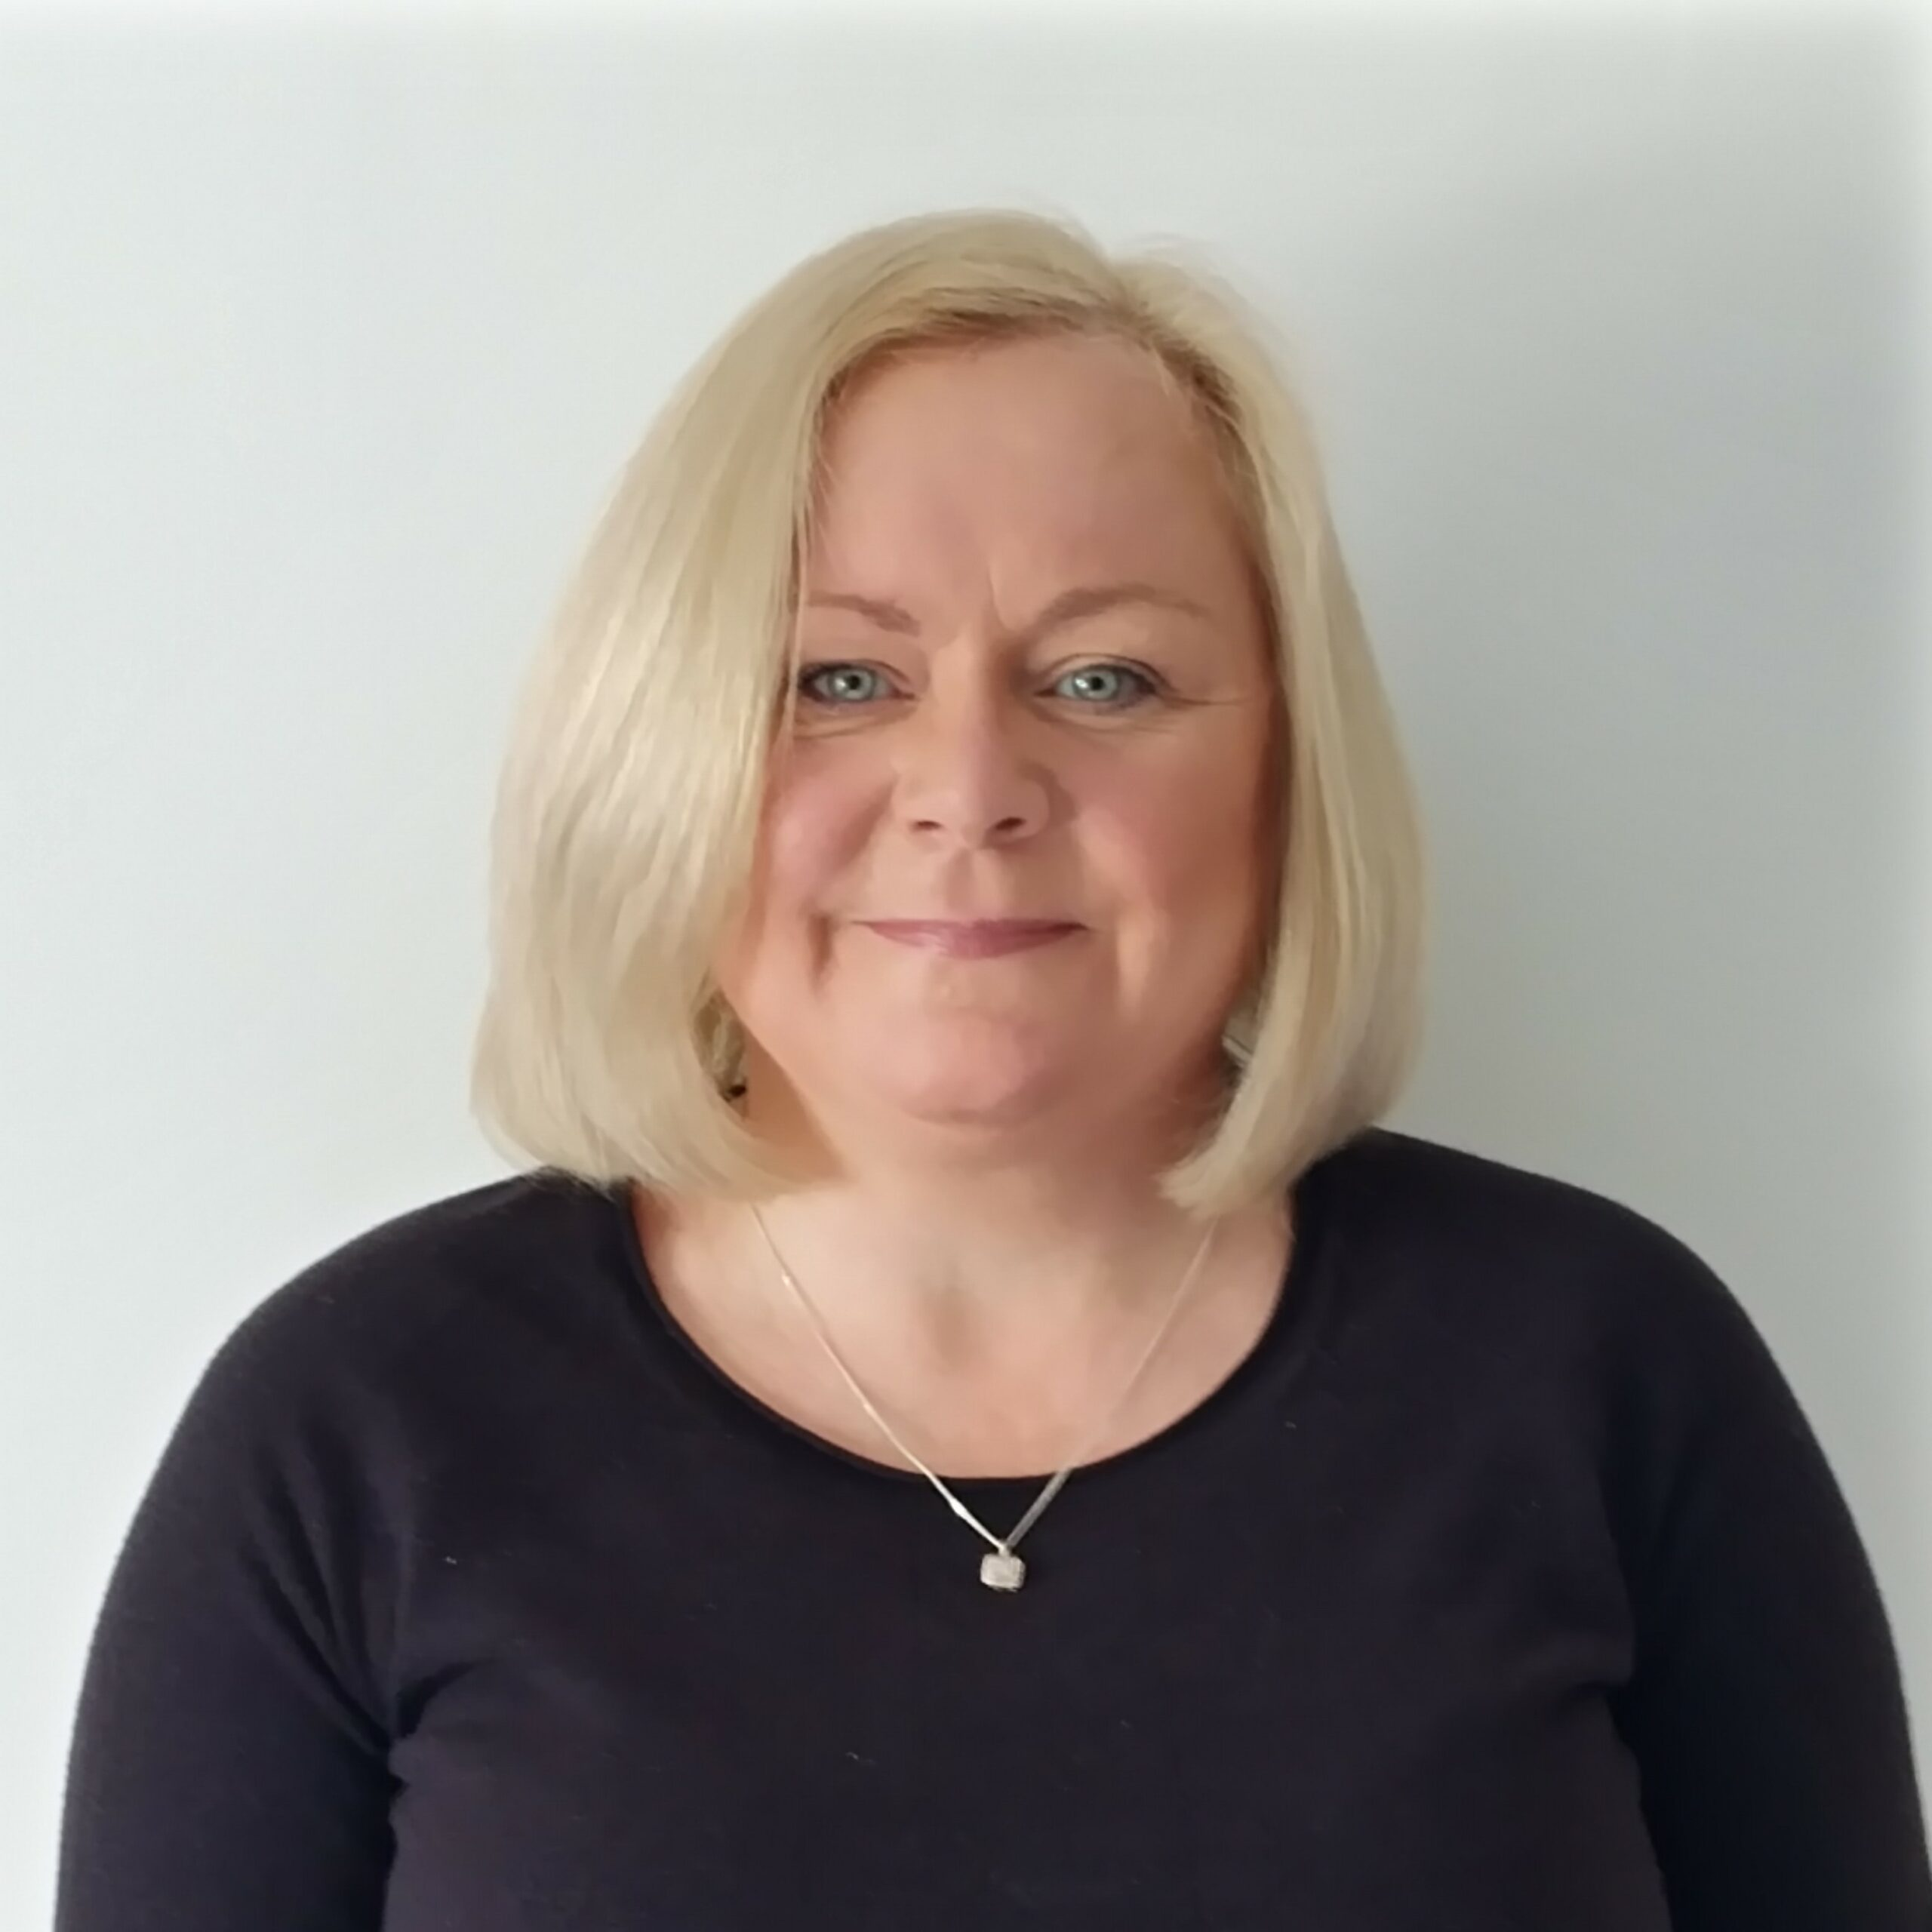 profile picture of diane reynolds